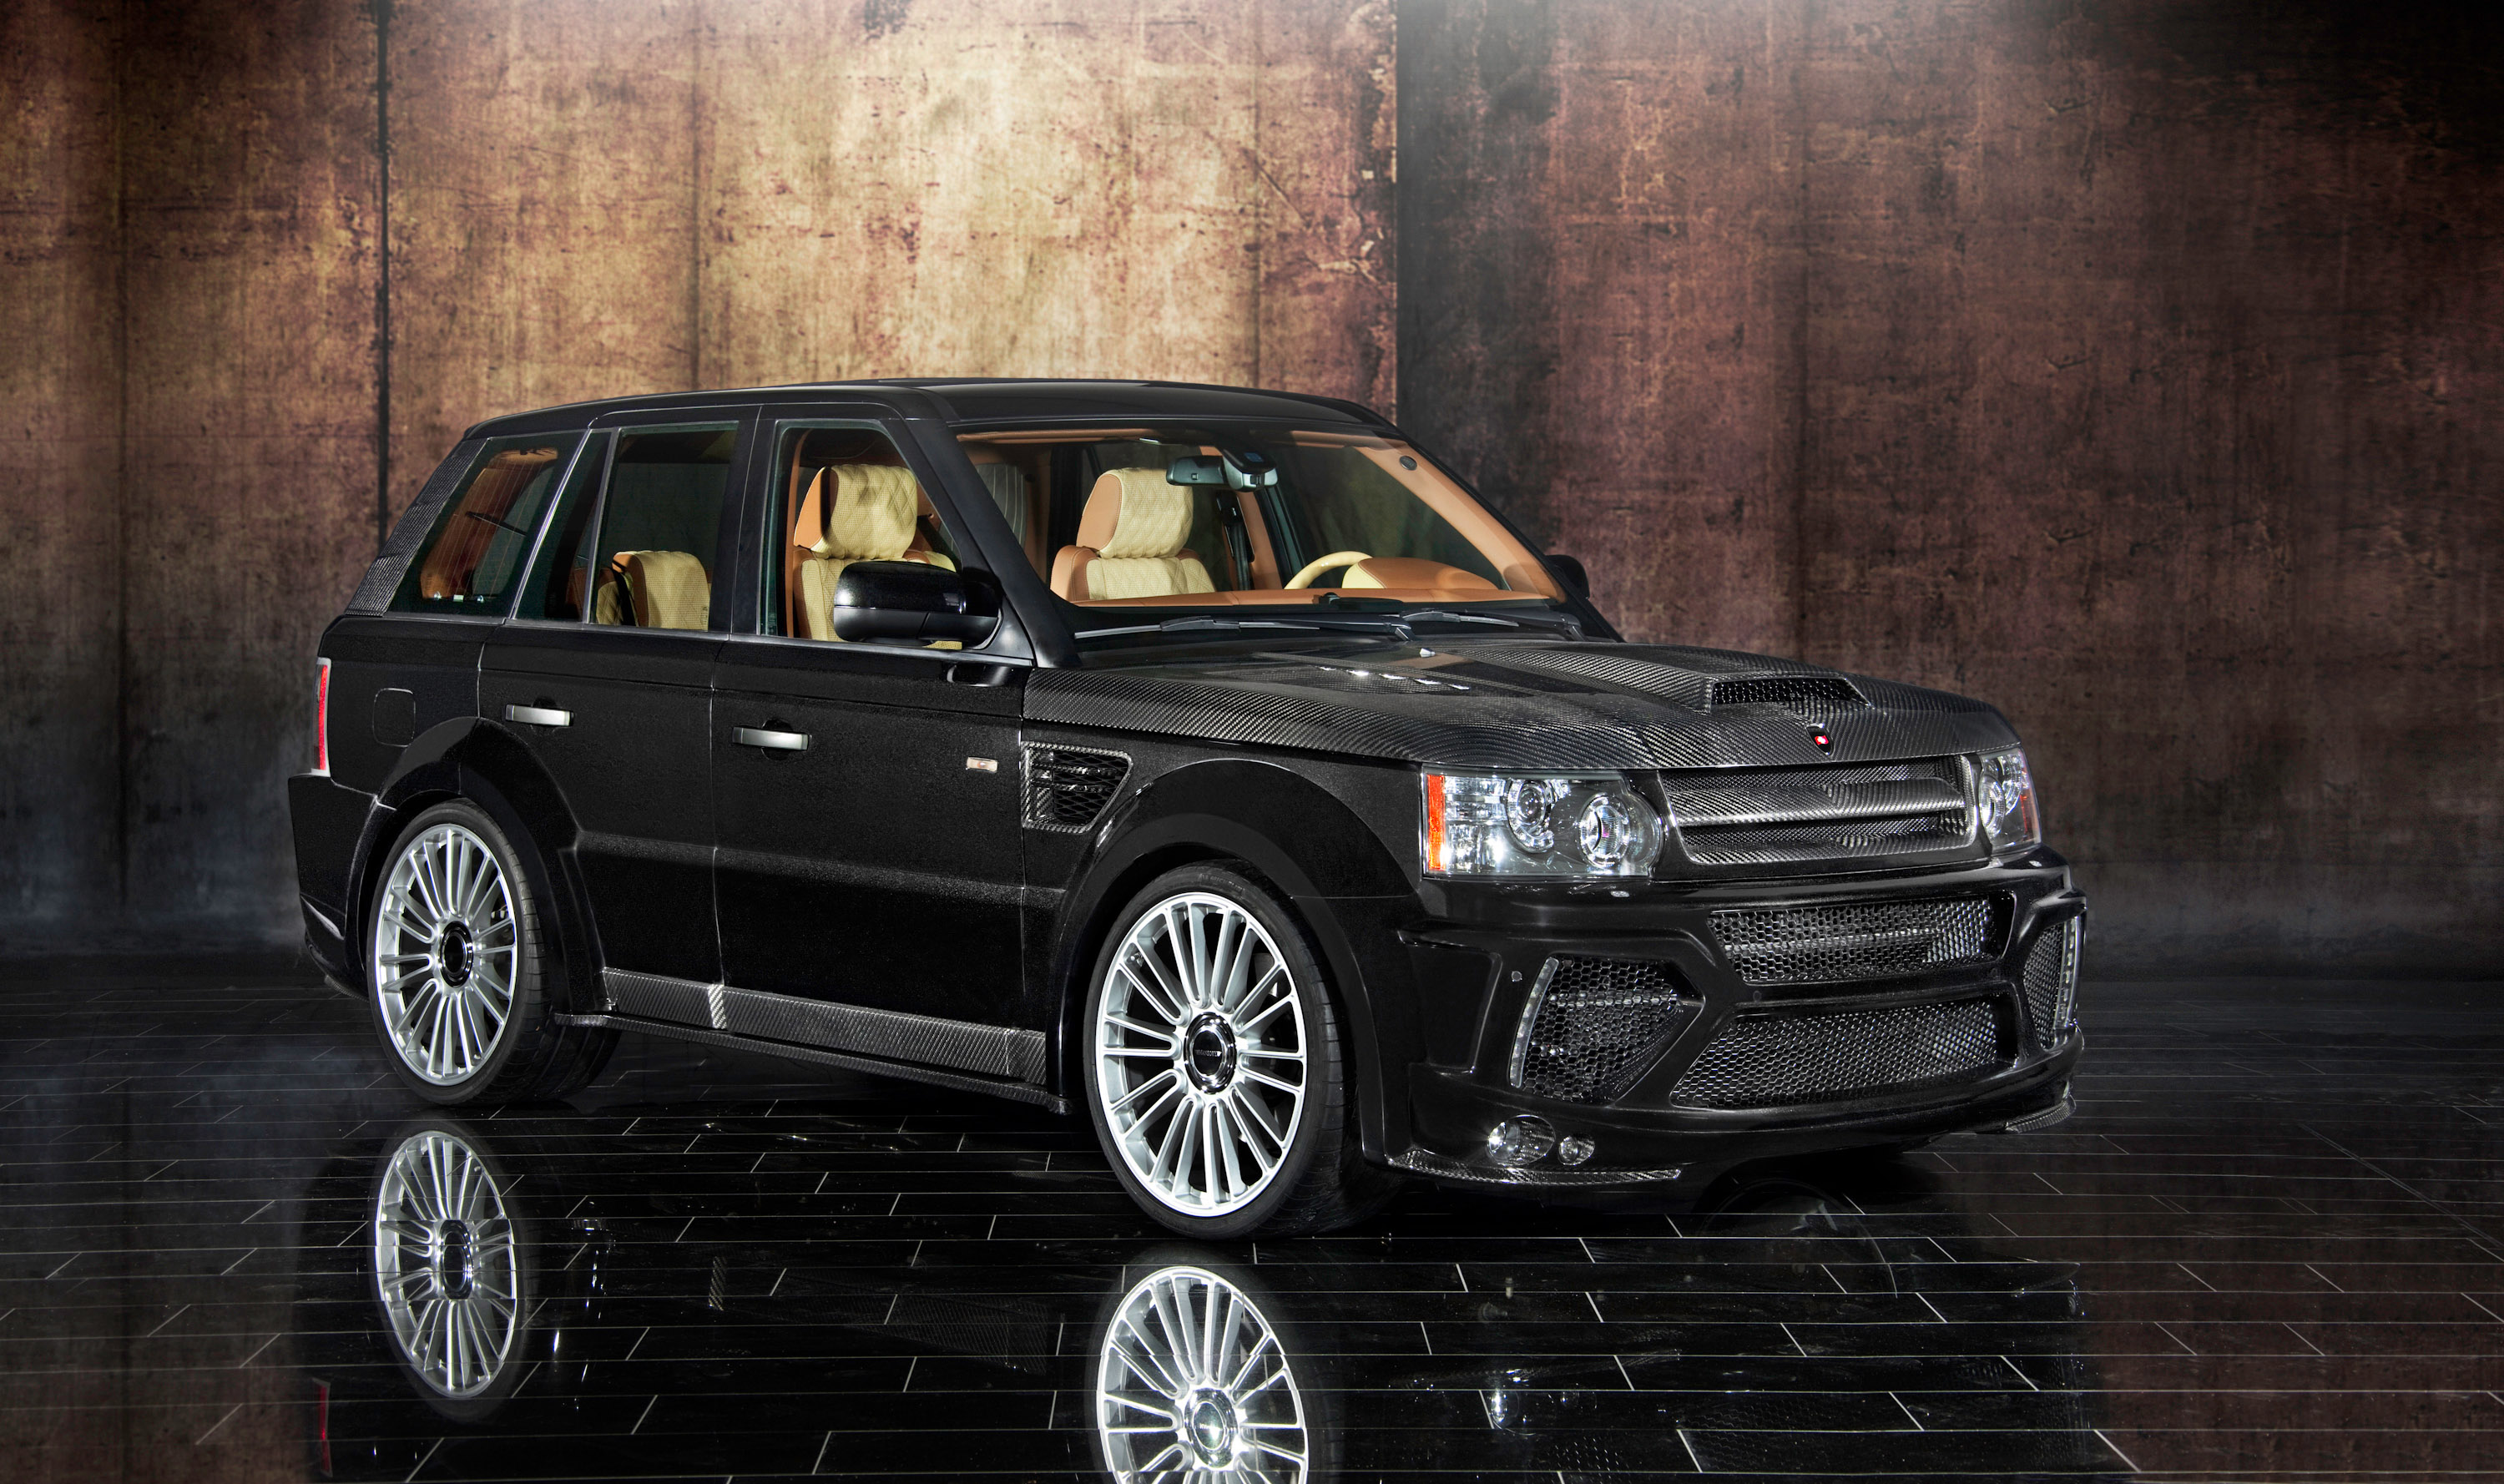 Mansory Range Rover Sport: Range Rover Sport By Mansory